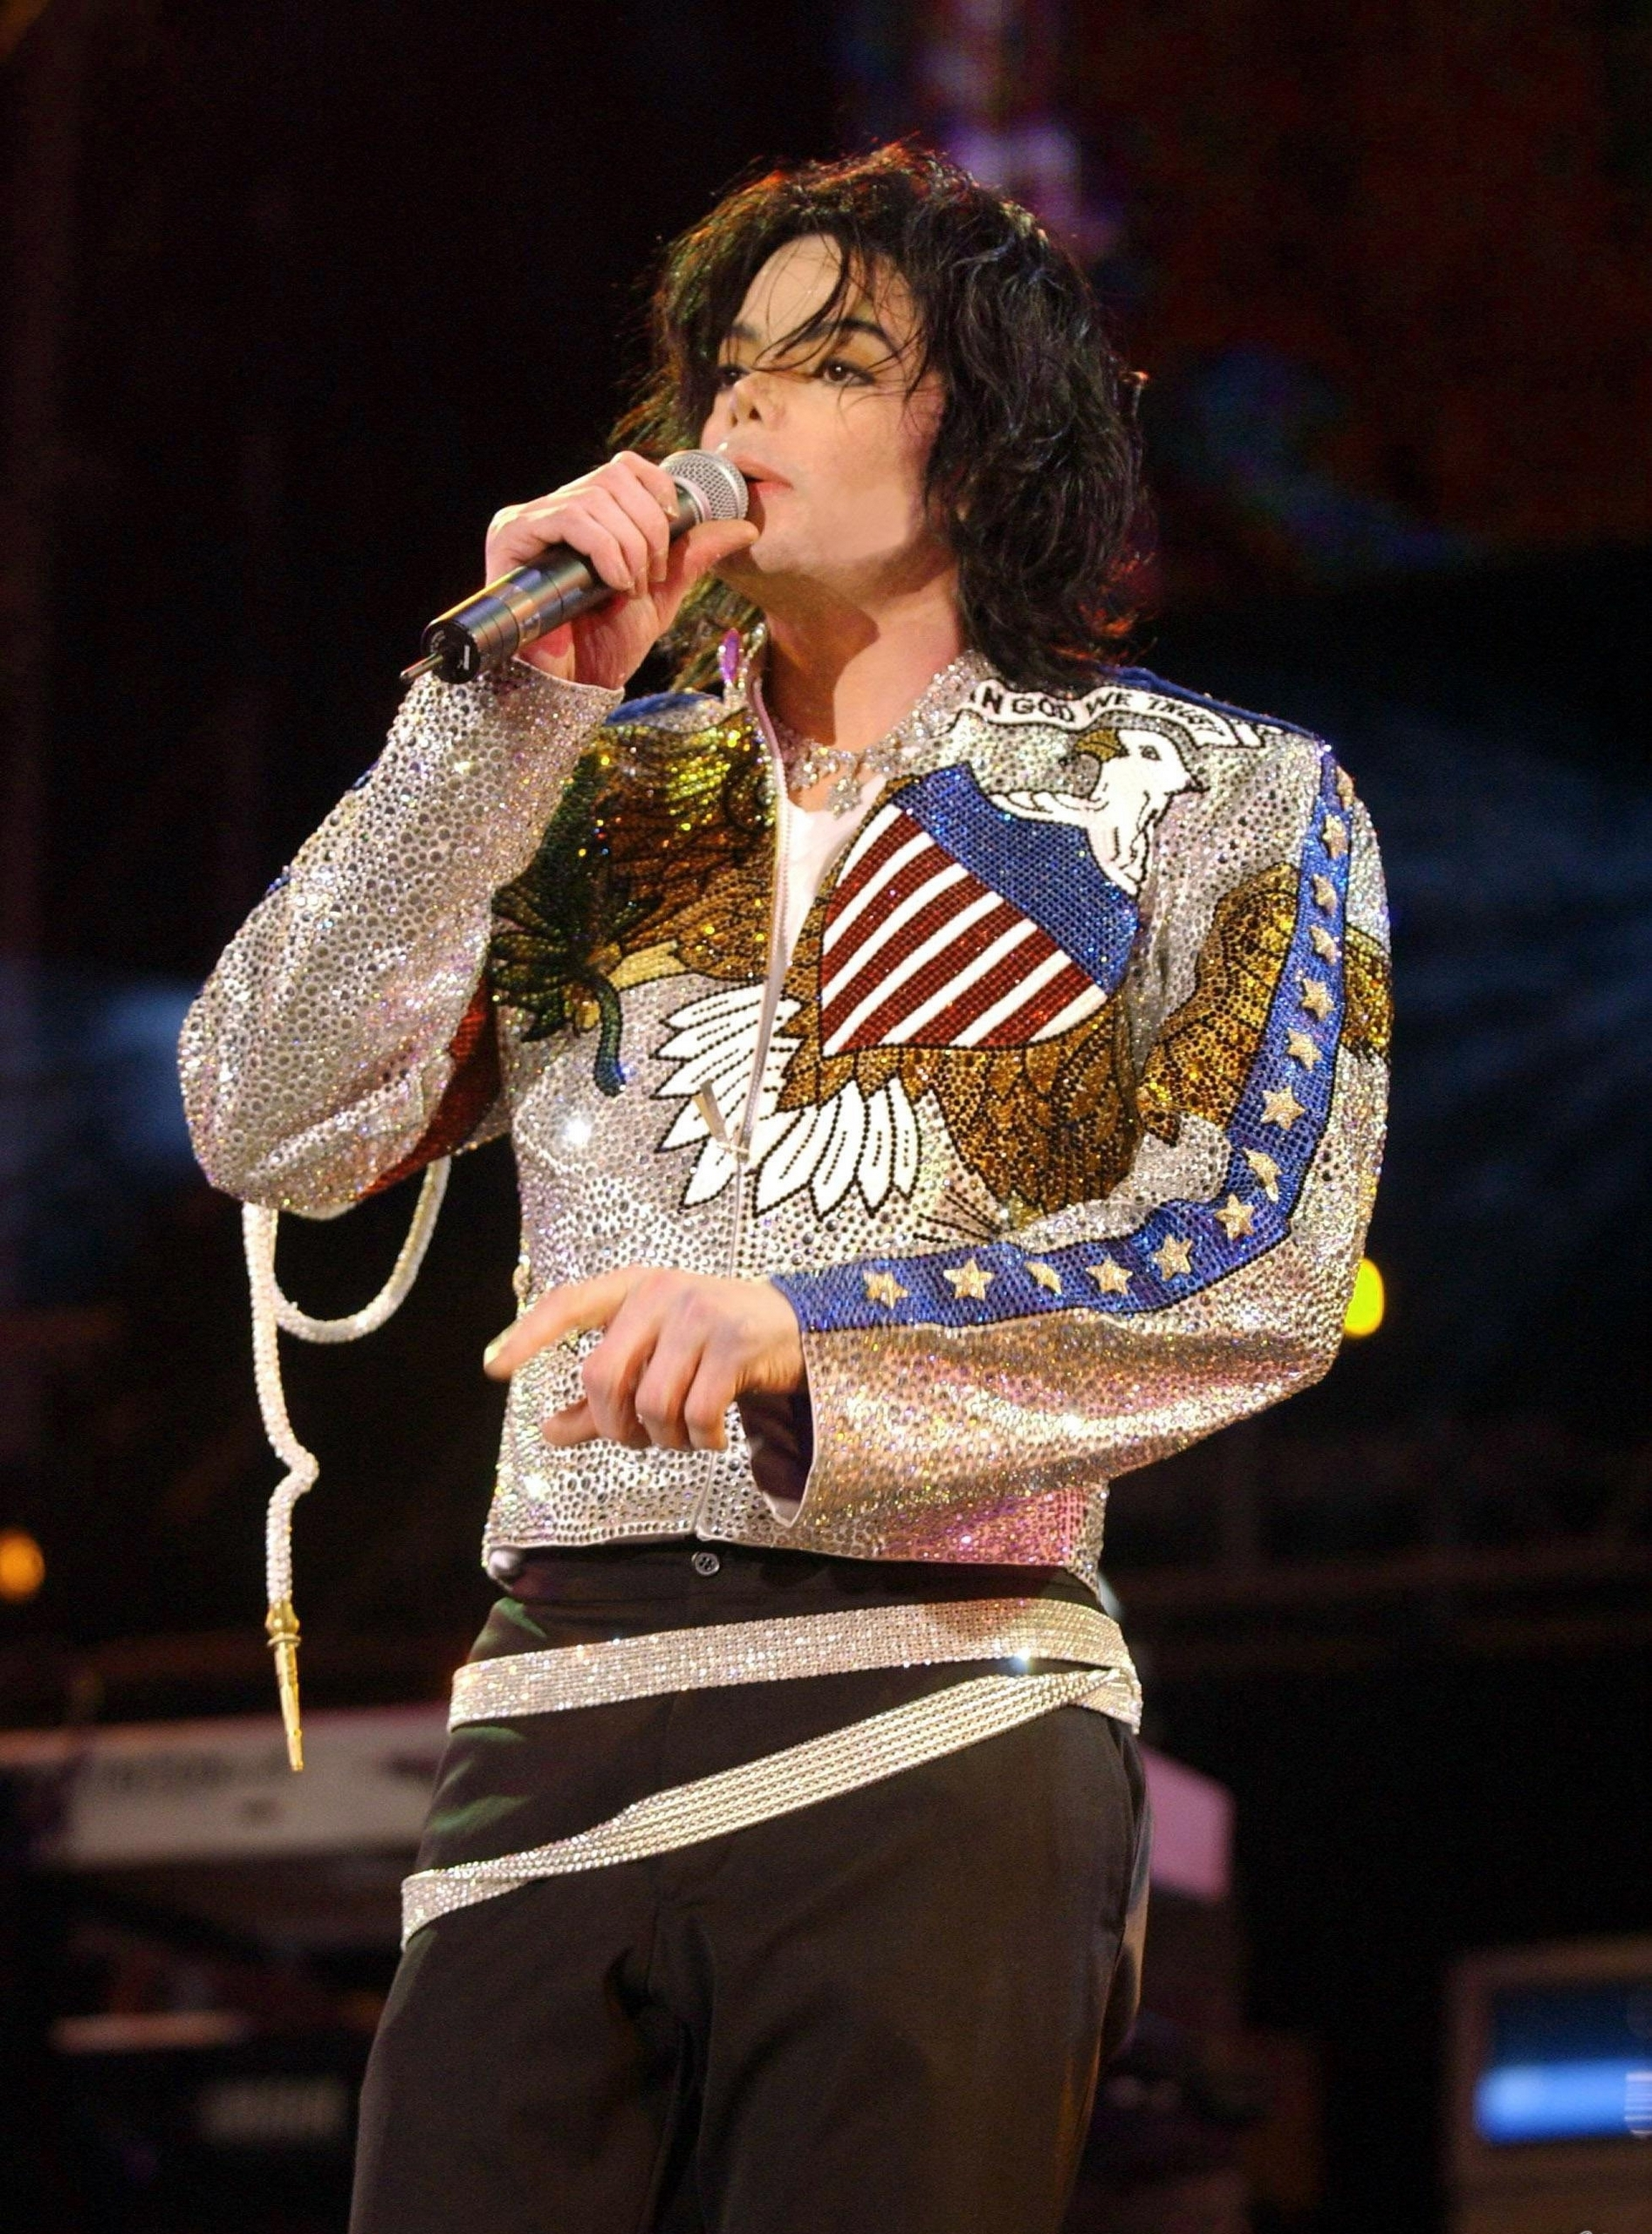 Mature Mj is really HOT!!!!